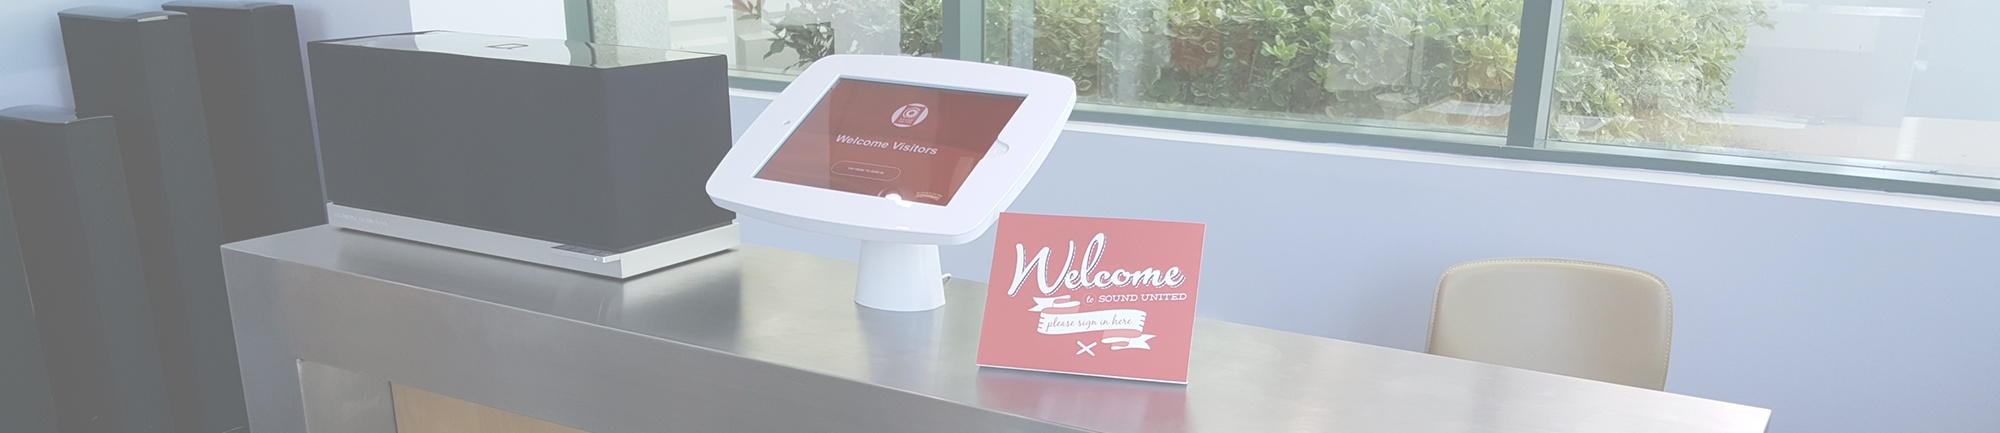 Visitor registration and check-in app